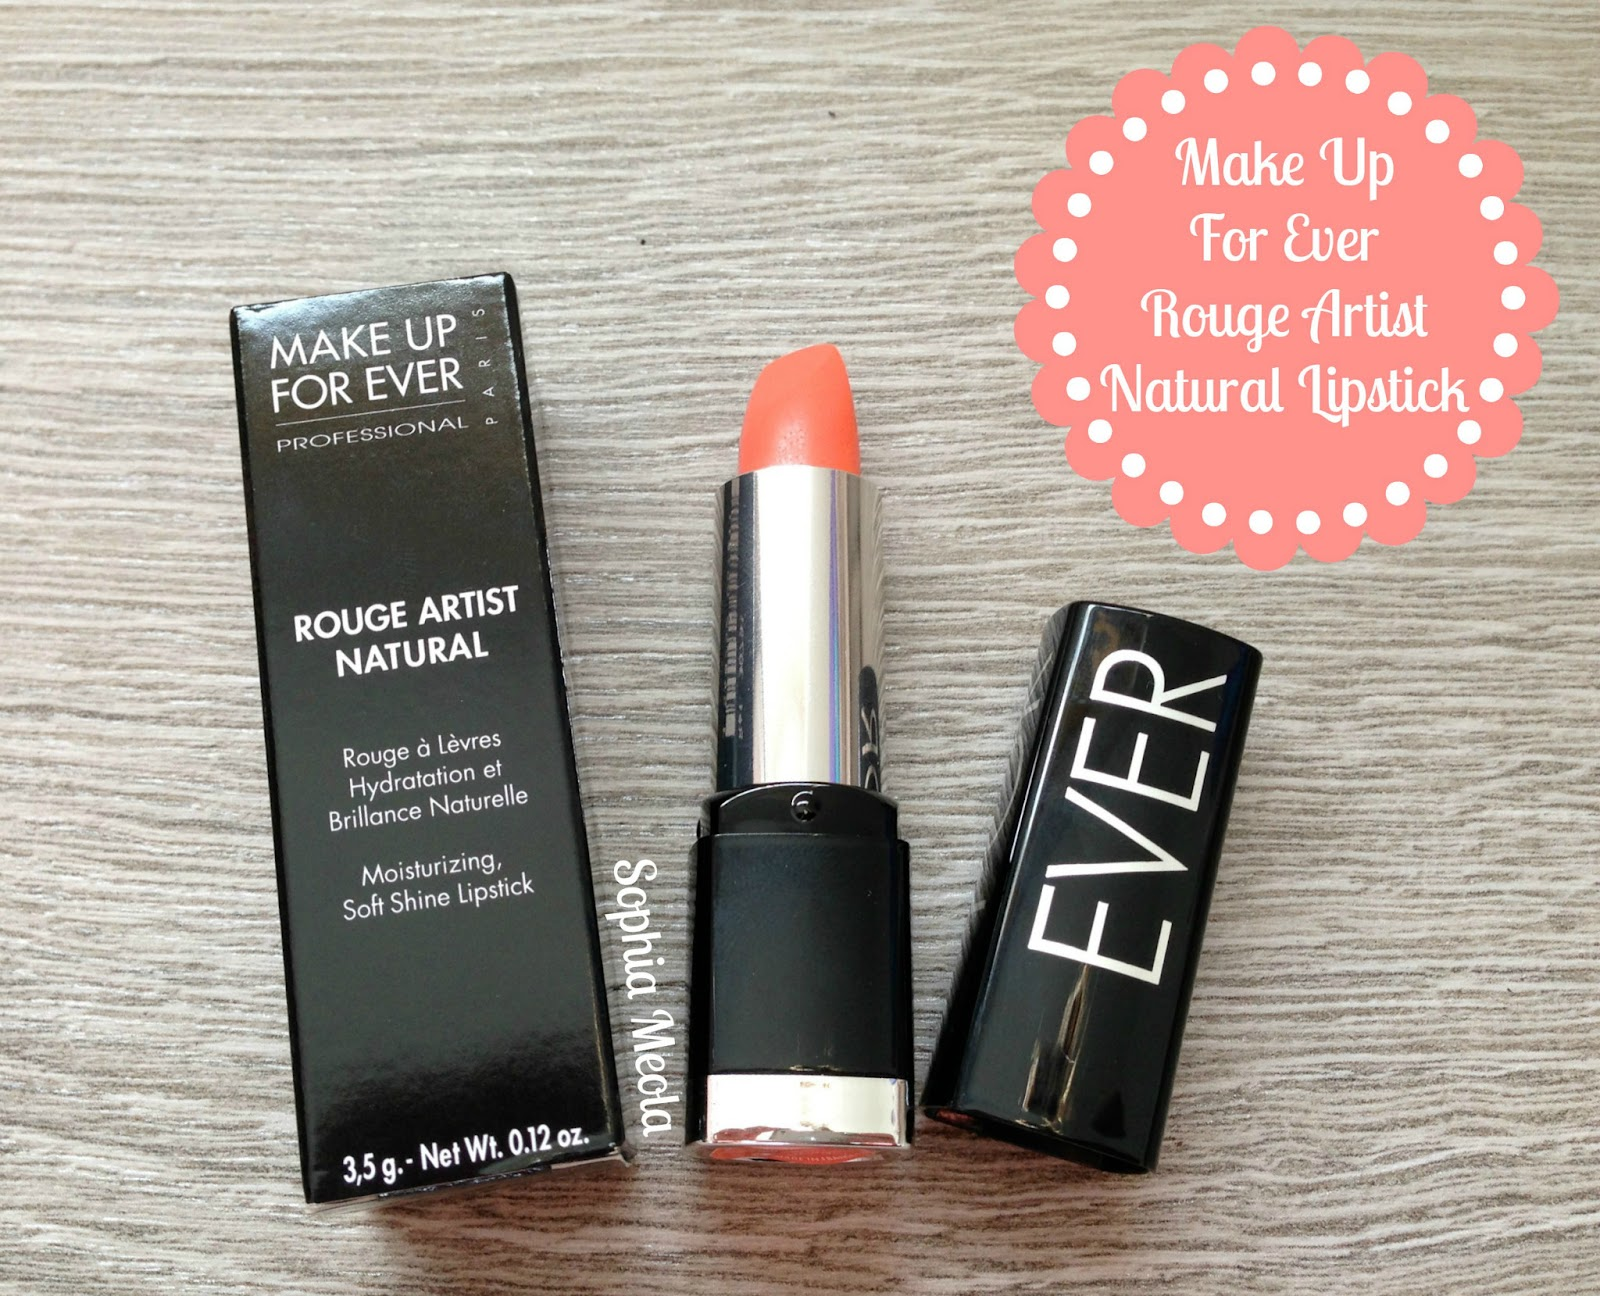 Makeup forever stores in usa